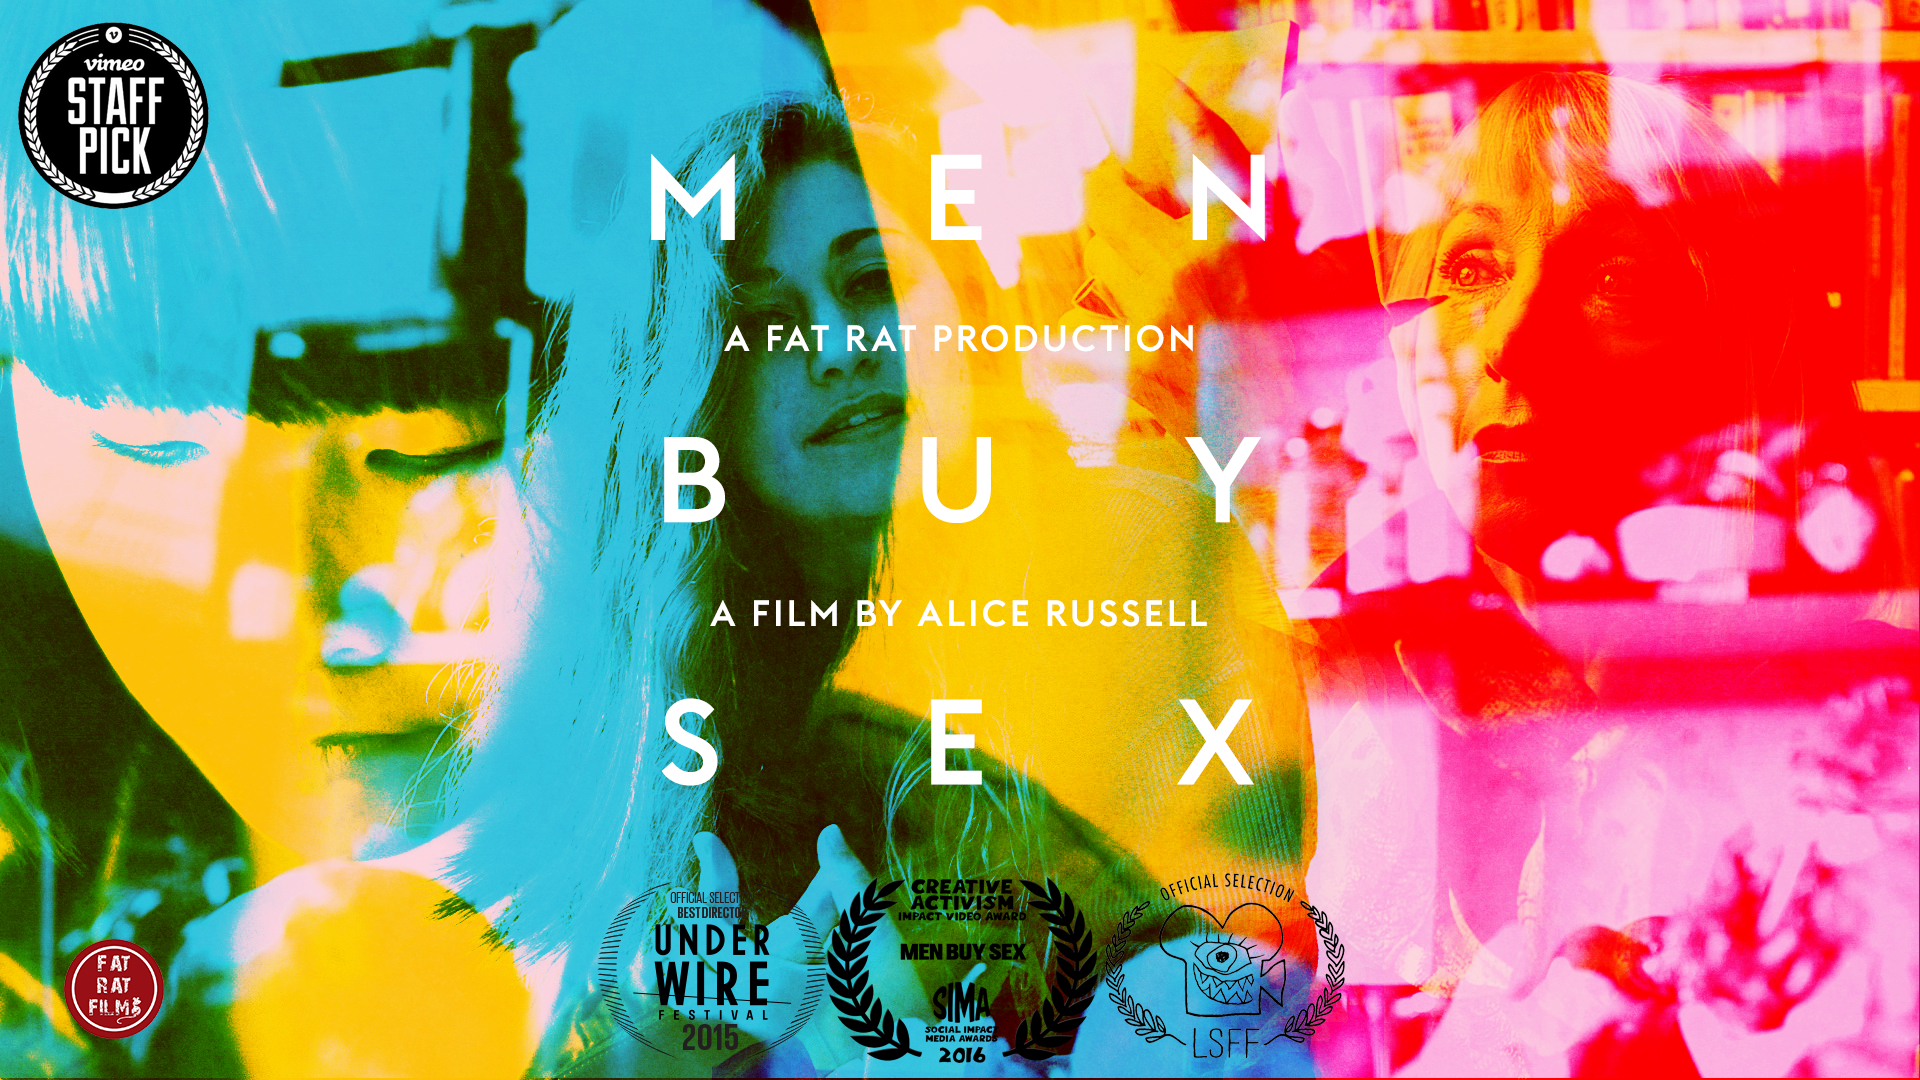 'Men Buy Sex'-Film Cover